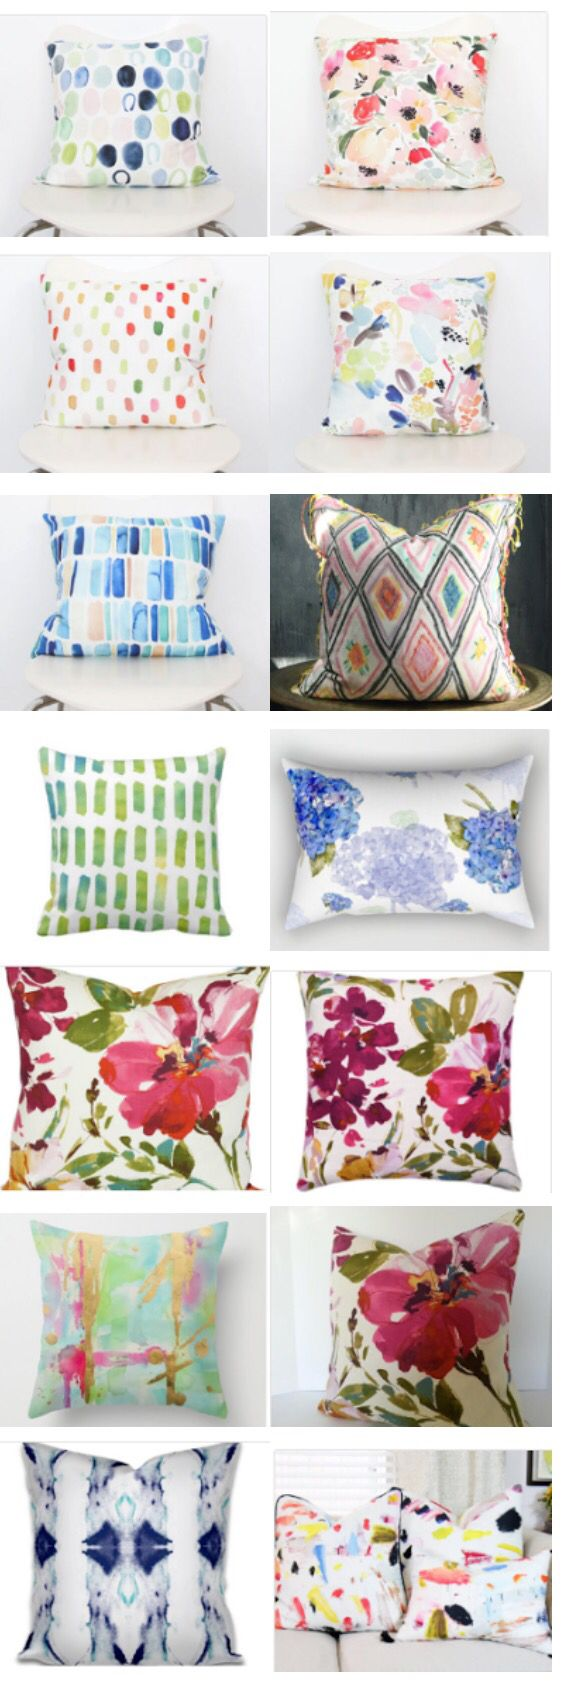 best pillow images on pinterest  cushions pillow talk and  - find this pin and more on pillow by marniesdesign